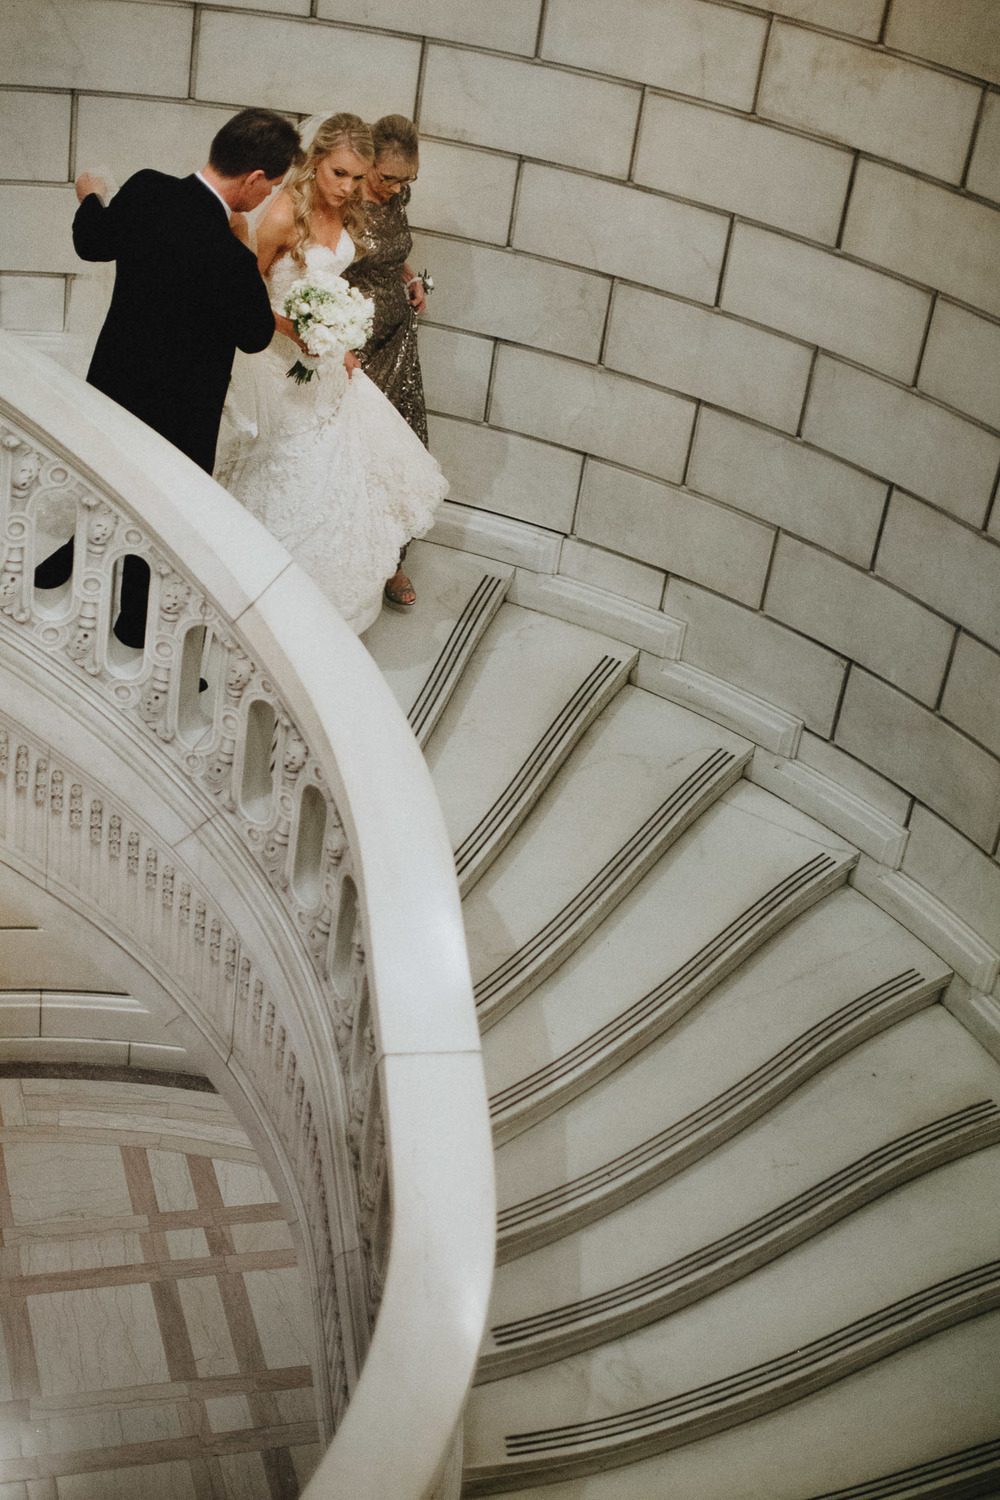 Alana-David-Cleveland-Old-Courthouse-Wedding-114@2x.jpg